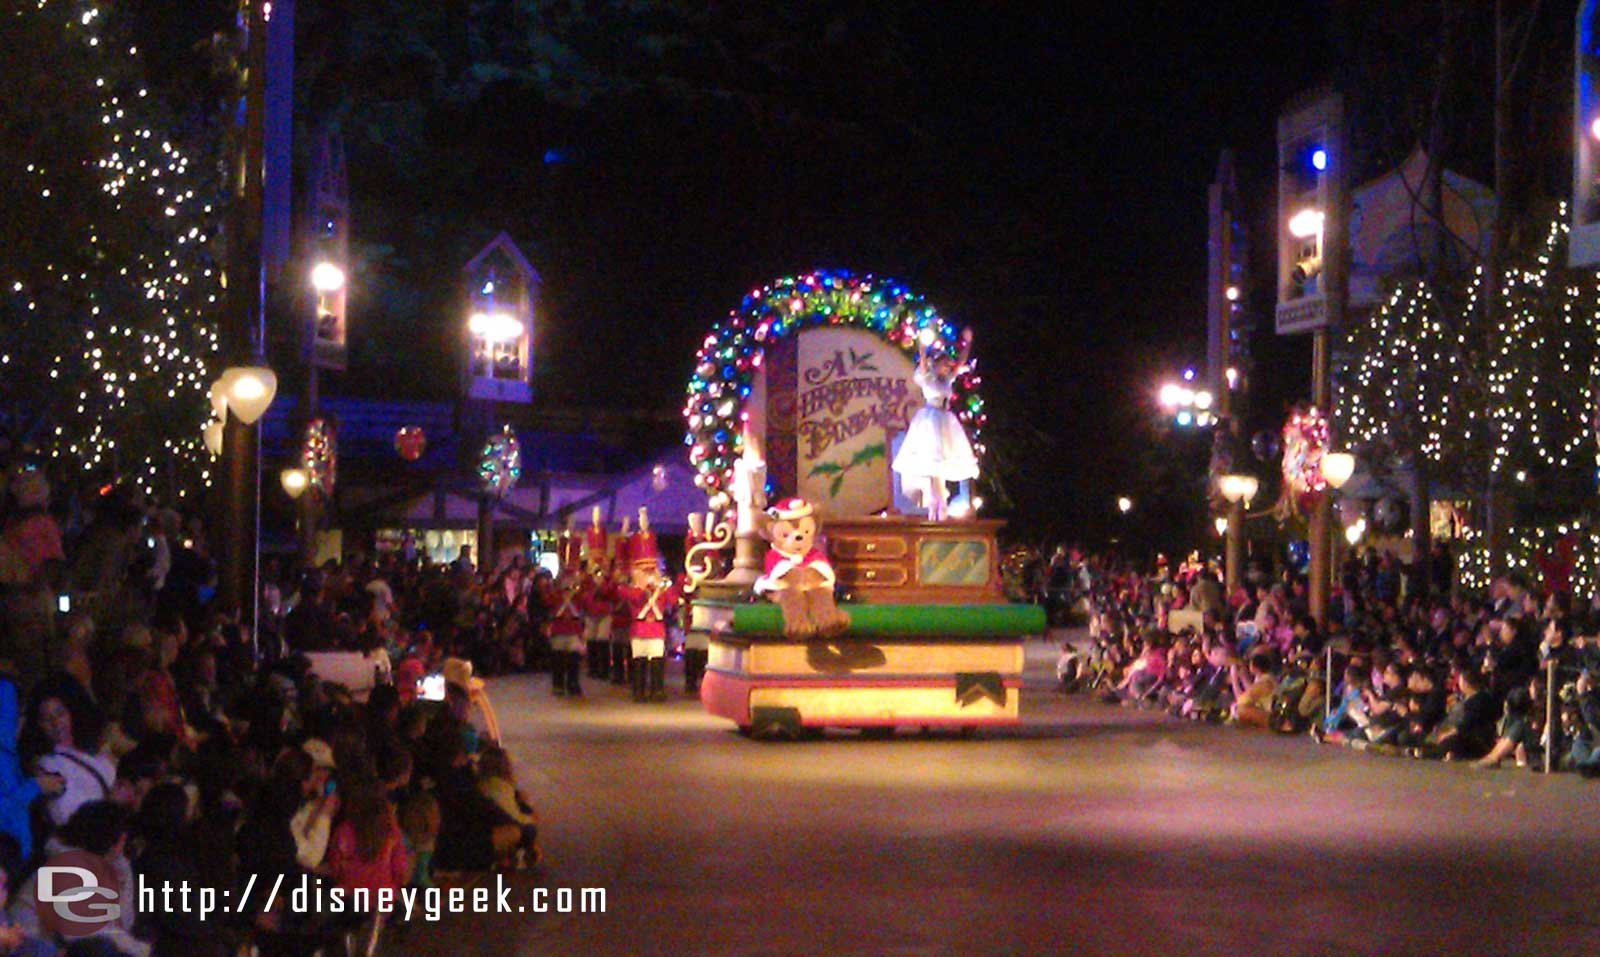 The first Christmas Fantasy parade of the year making its way toward Small World